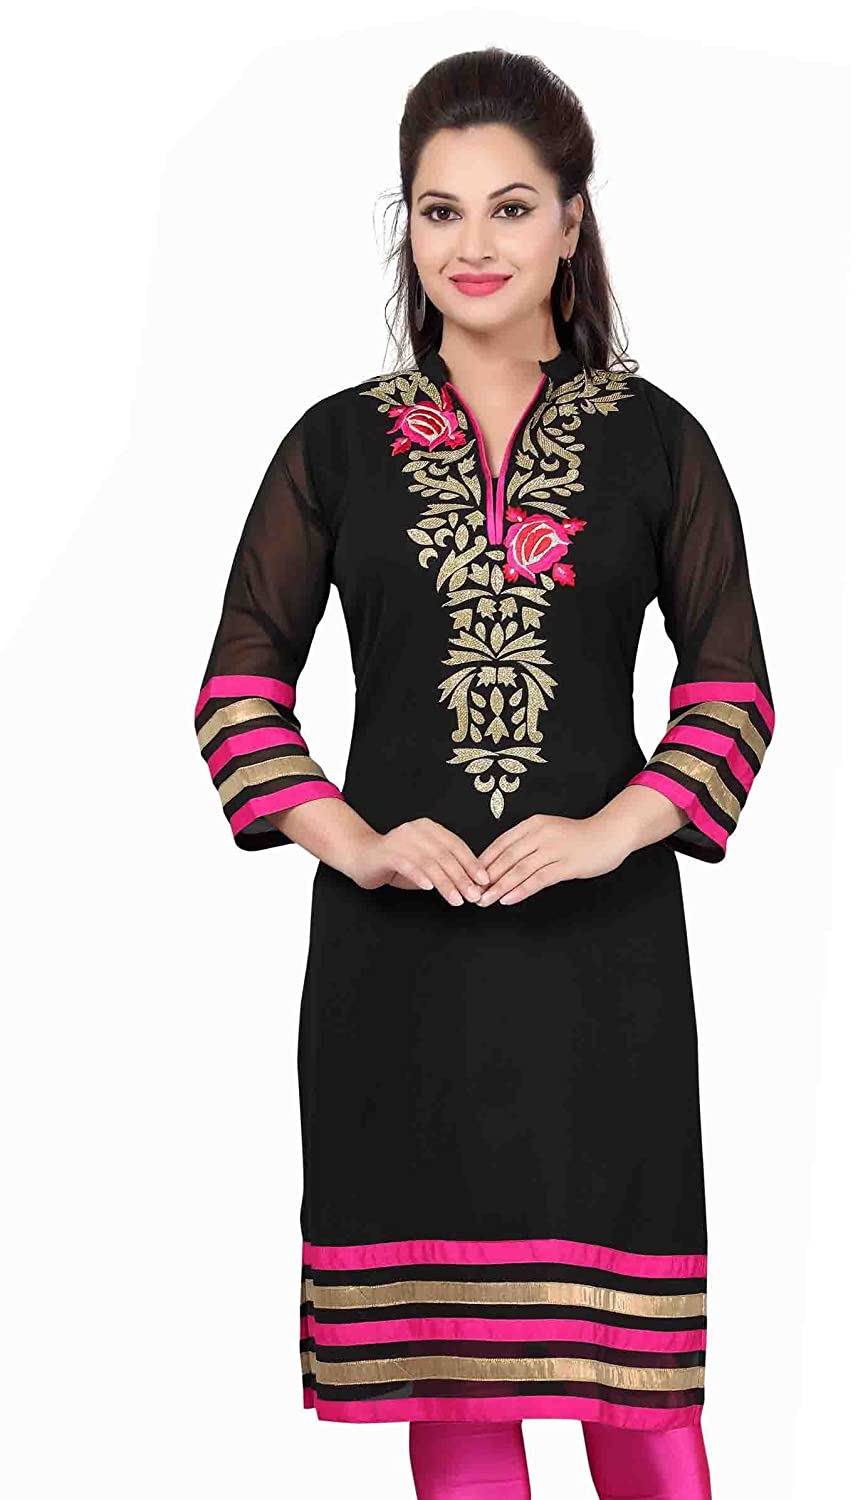 Jayayamala Schwarz Georgette bestickt Casual Dress Damen Tunika ...